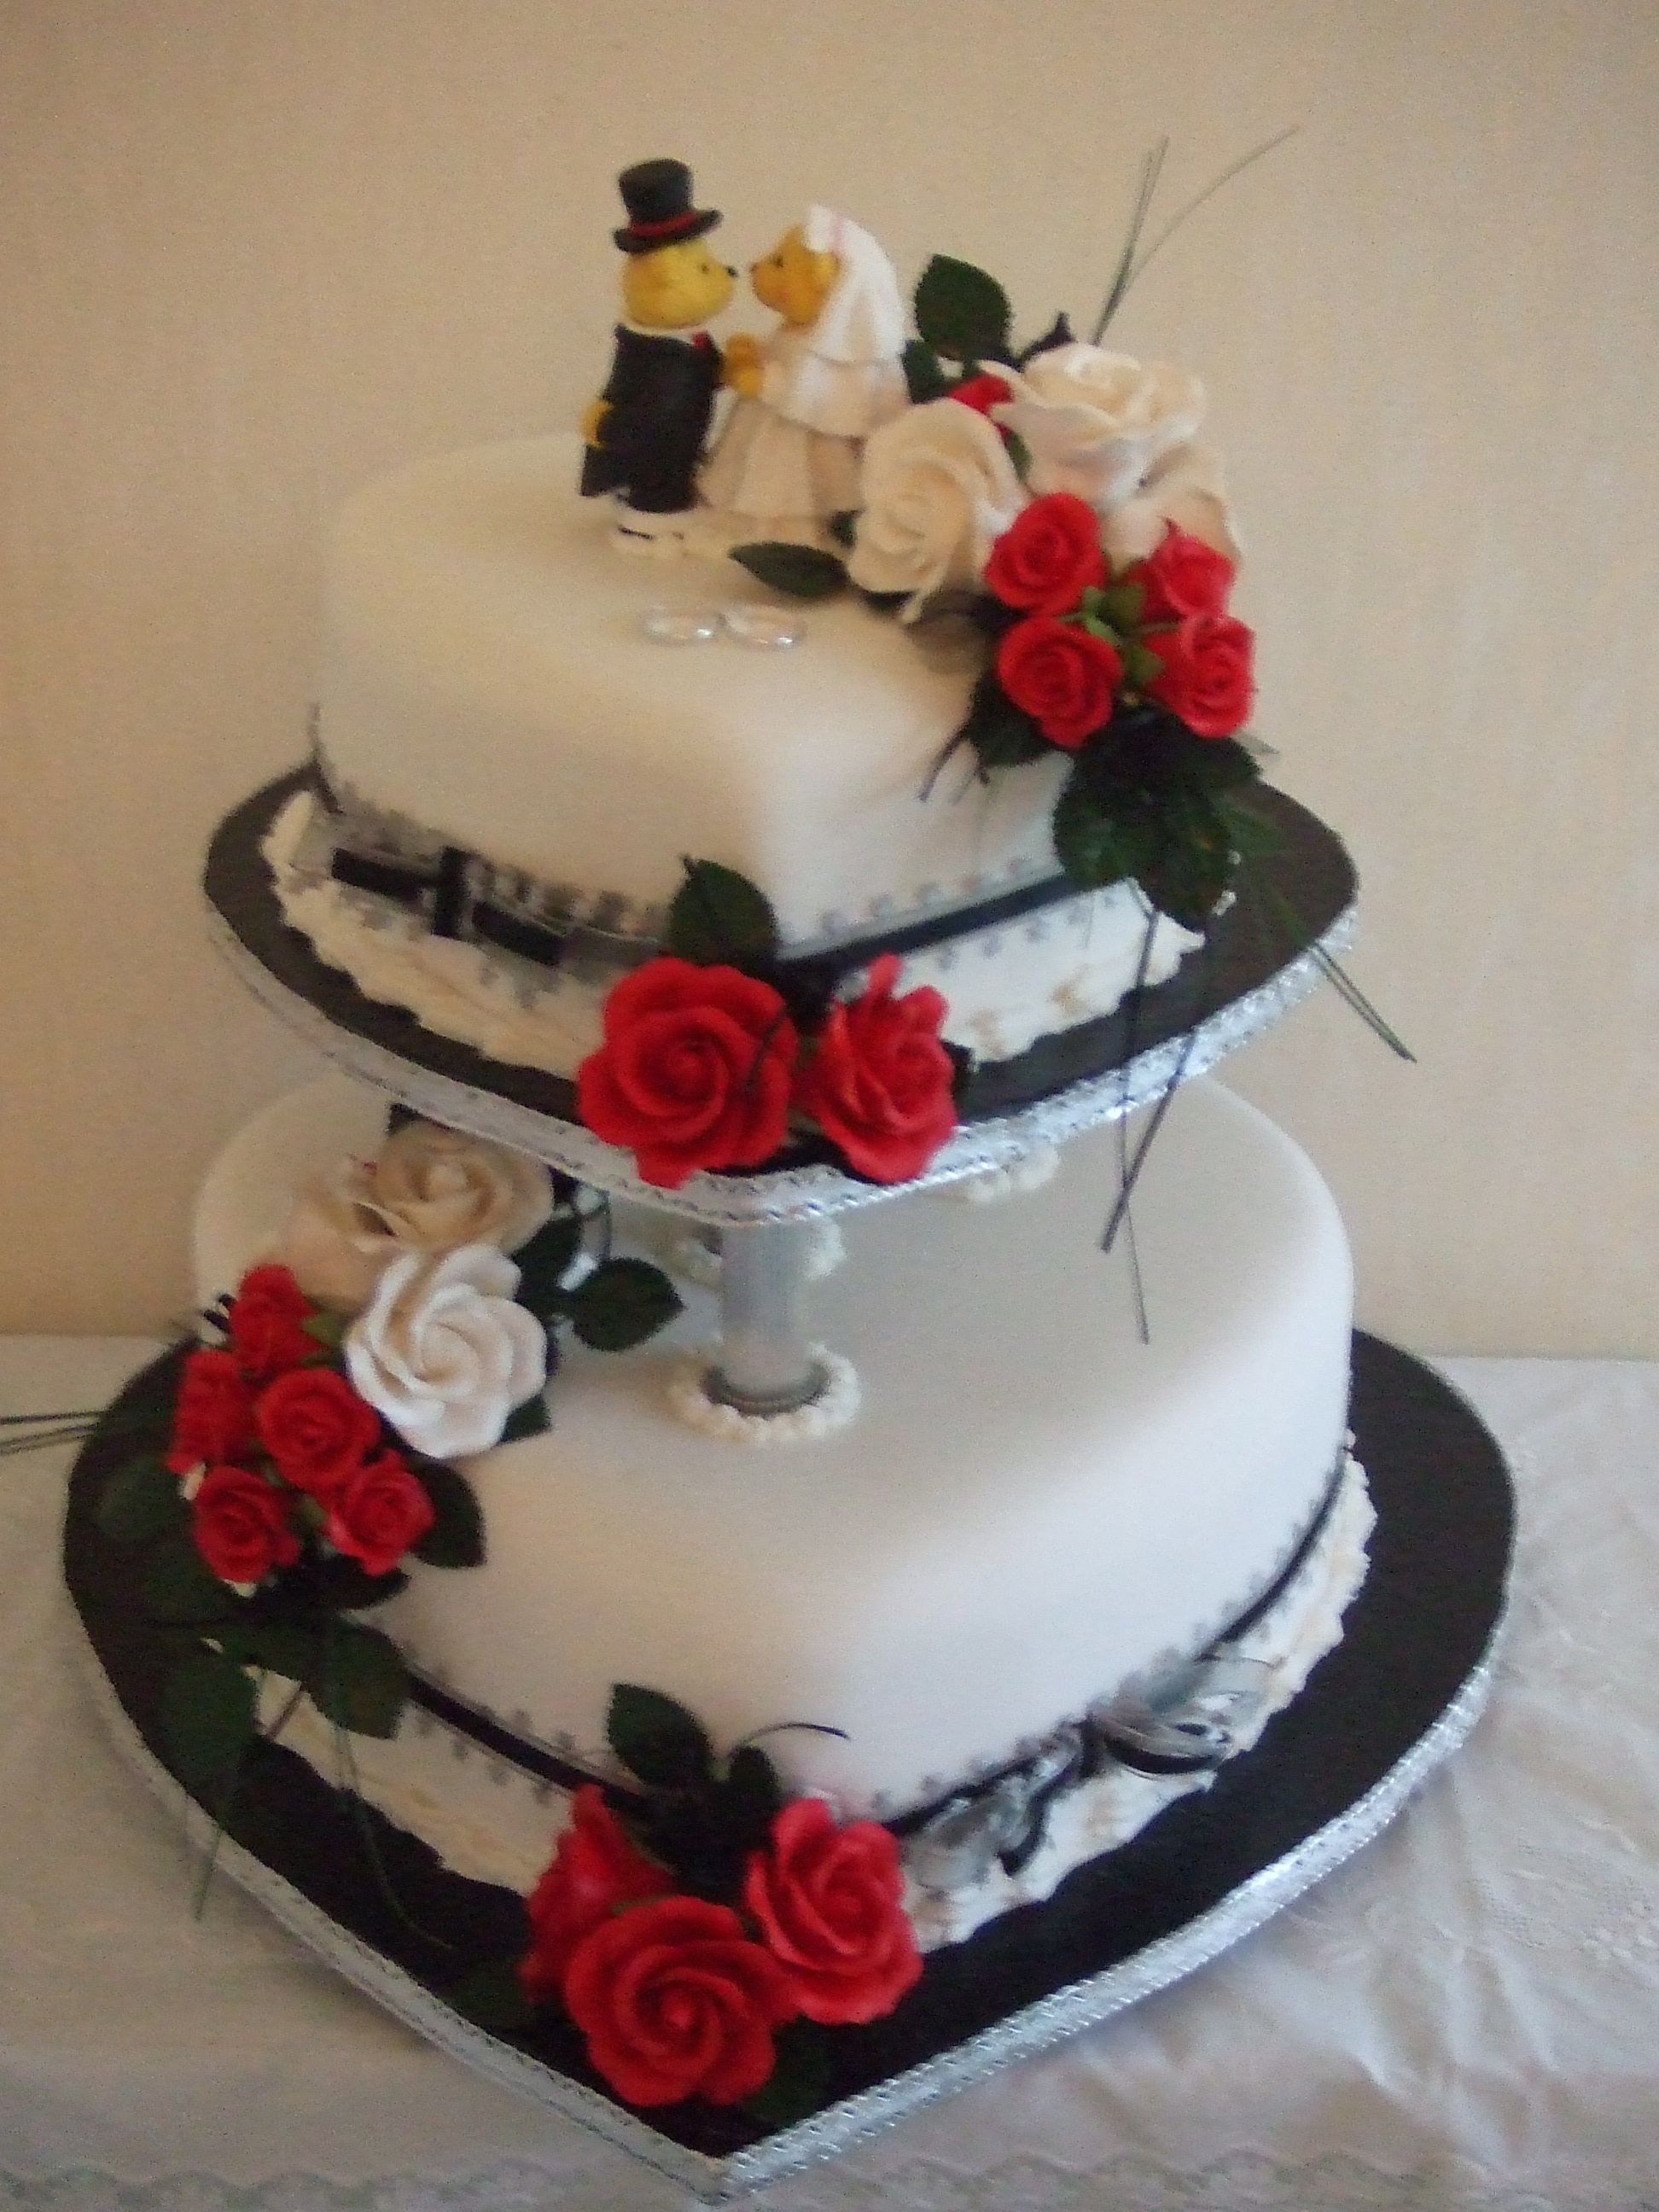 2 Tier Heart Wedding Cakes With White Red And Black As